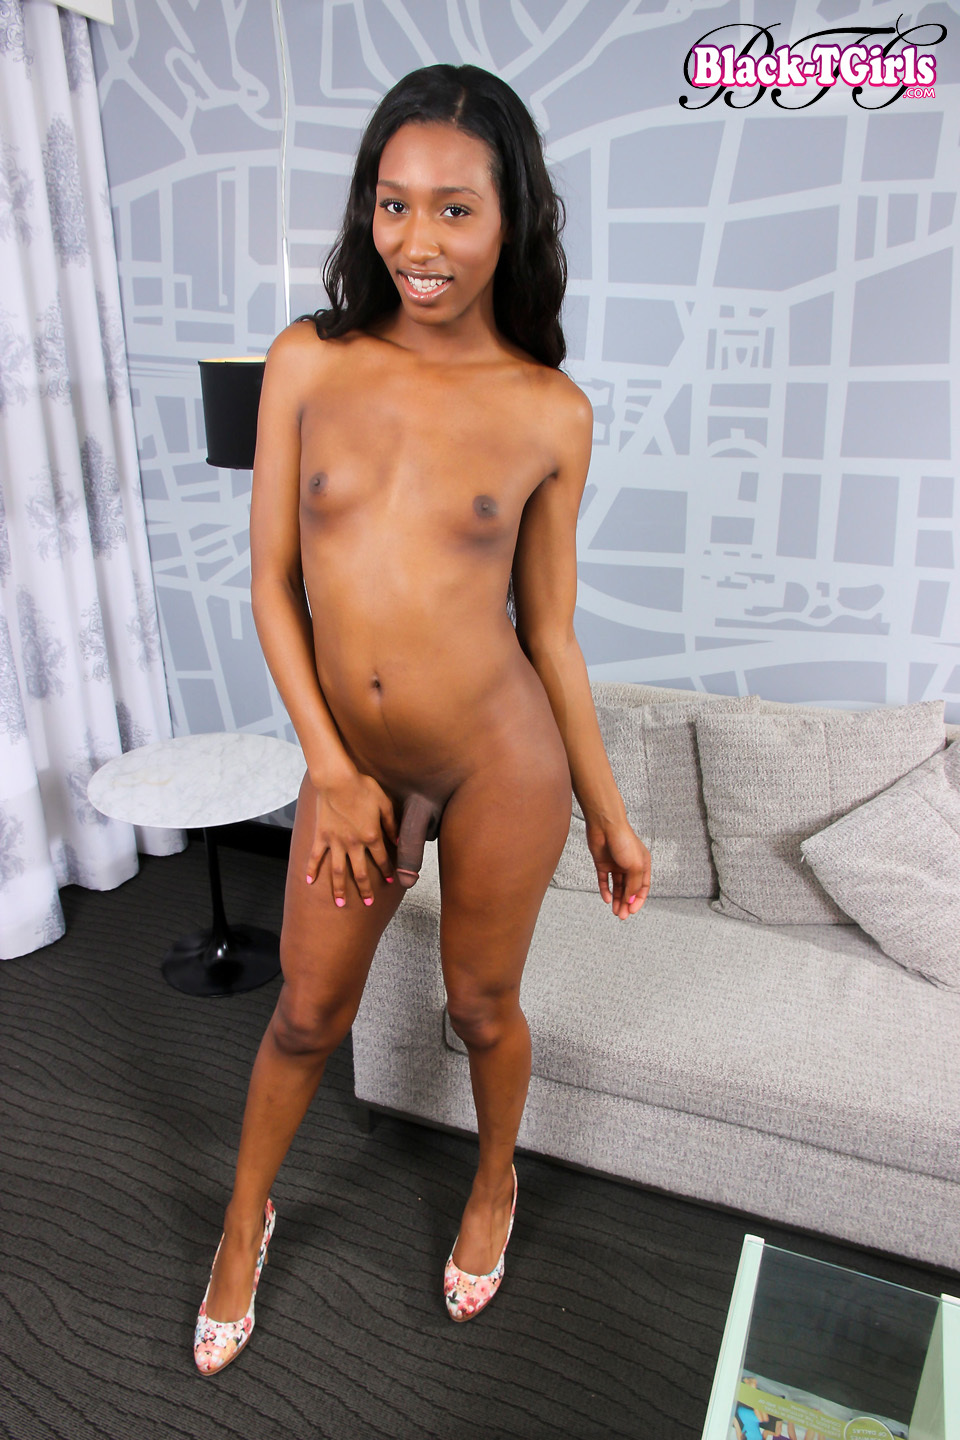 Toya Long Is A Seductive Grooby Girl With A Kissable Well Toned Body